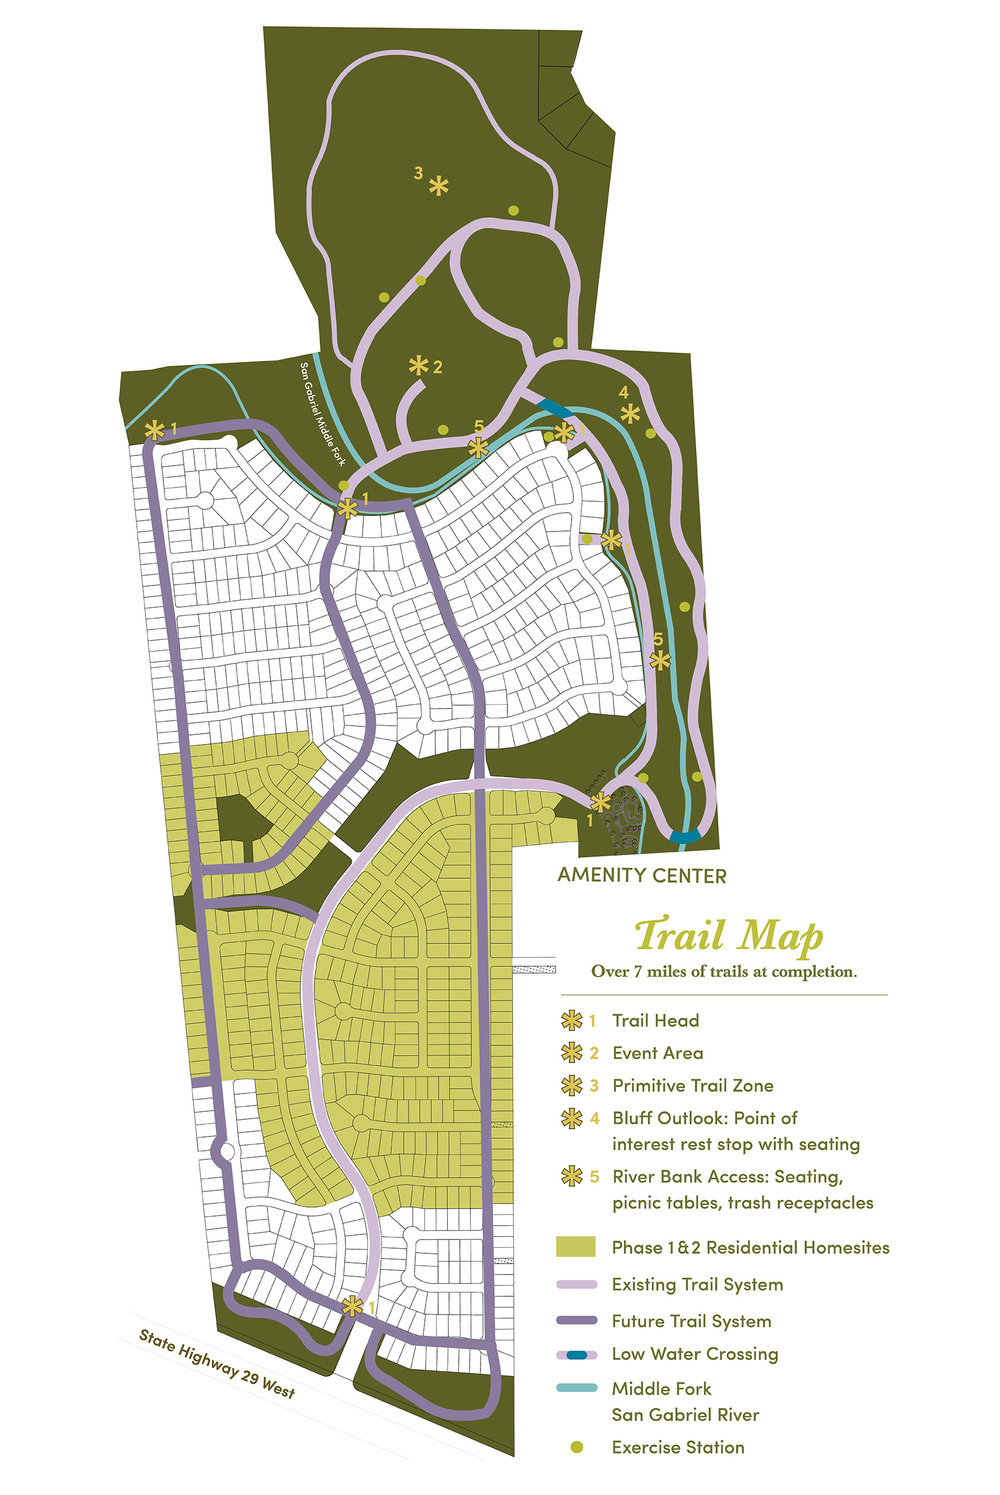 OSGCO-0115-Update-Trail-Map-Just-Map-24x36_MECH_forweb.jpg